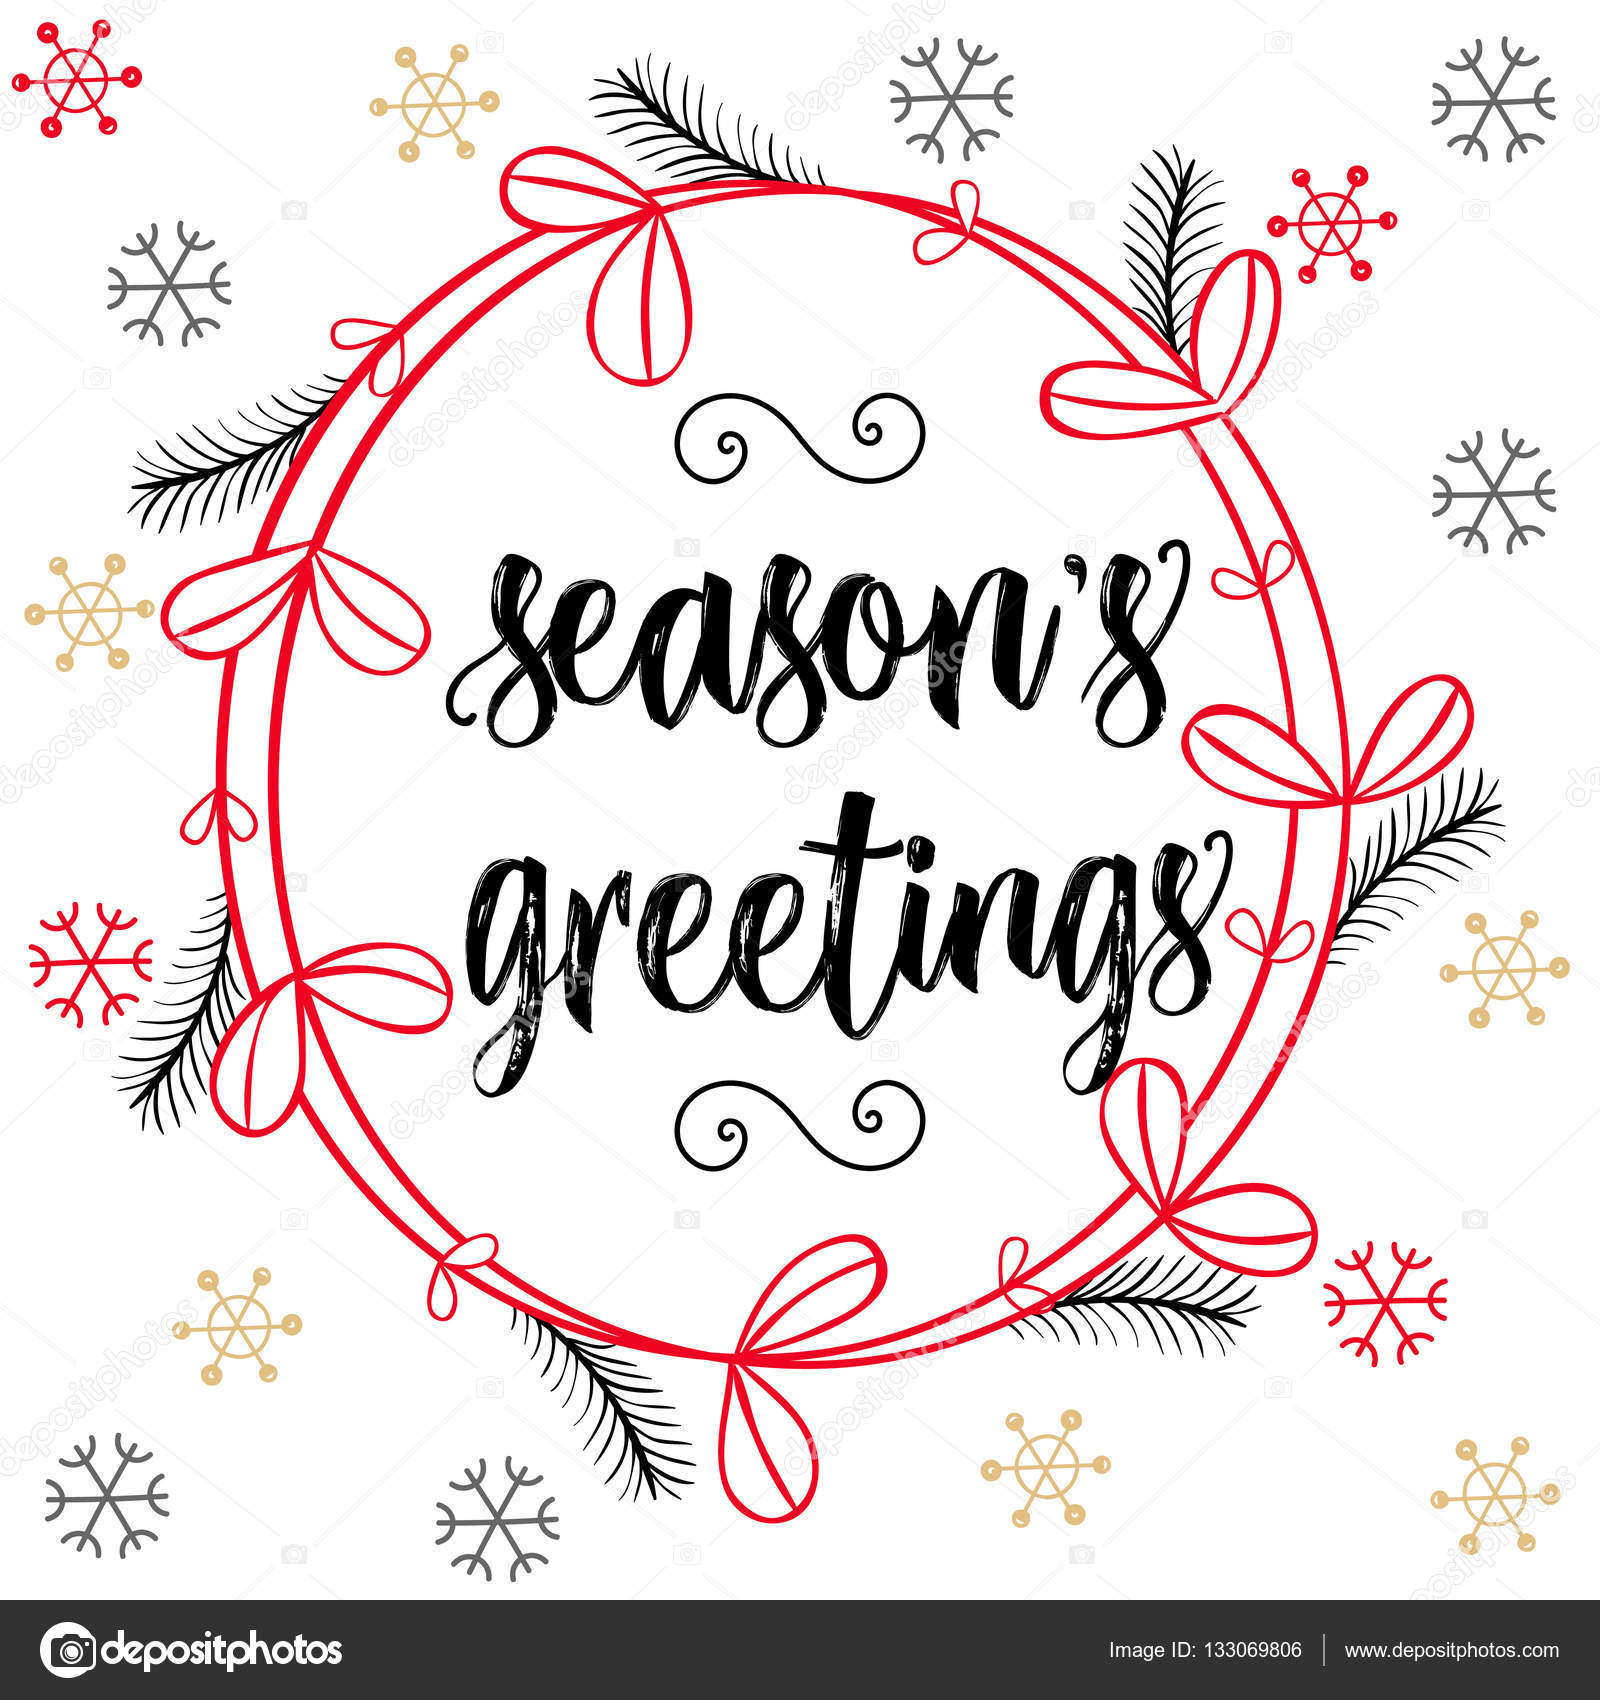 Christmas calligraphy seasons greetings hand drawn brush christmas calligraphy seasons greetings hand drawn brush lettering in red black colors floral wreath snow flakes greeting card template banner kristyandbryce Choice Image